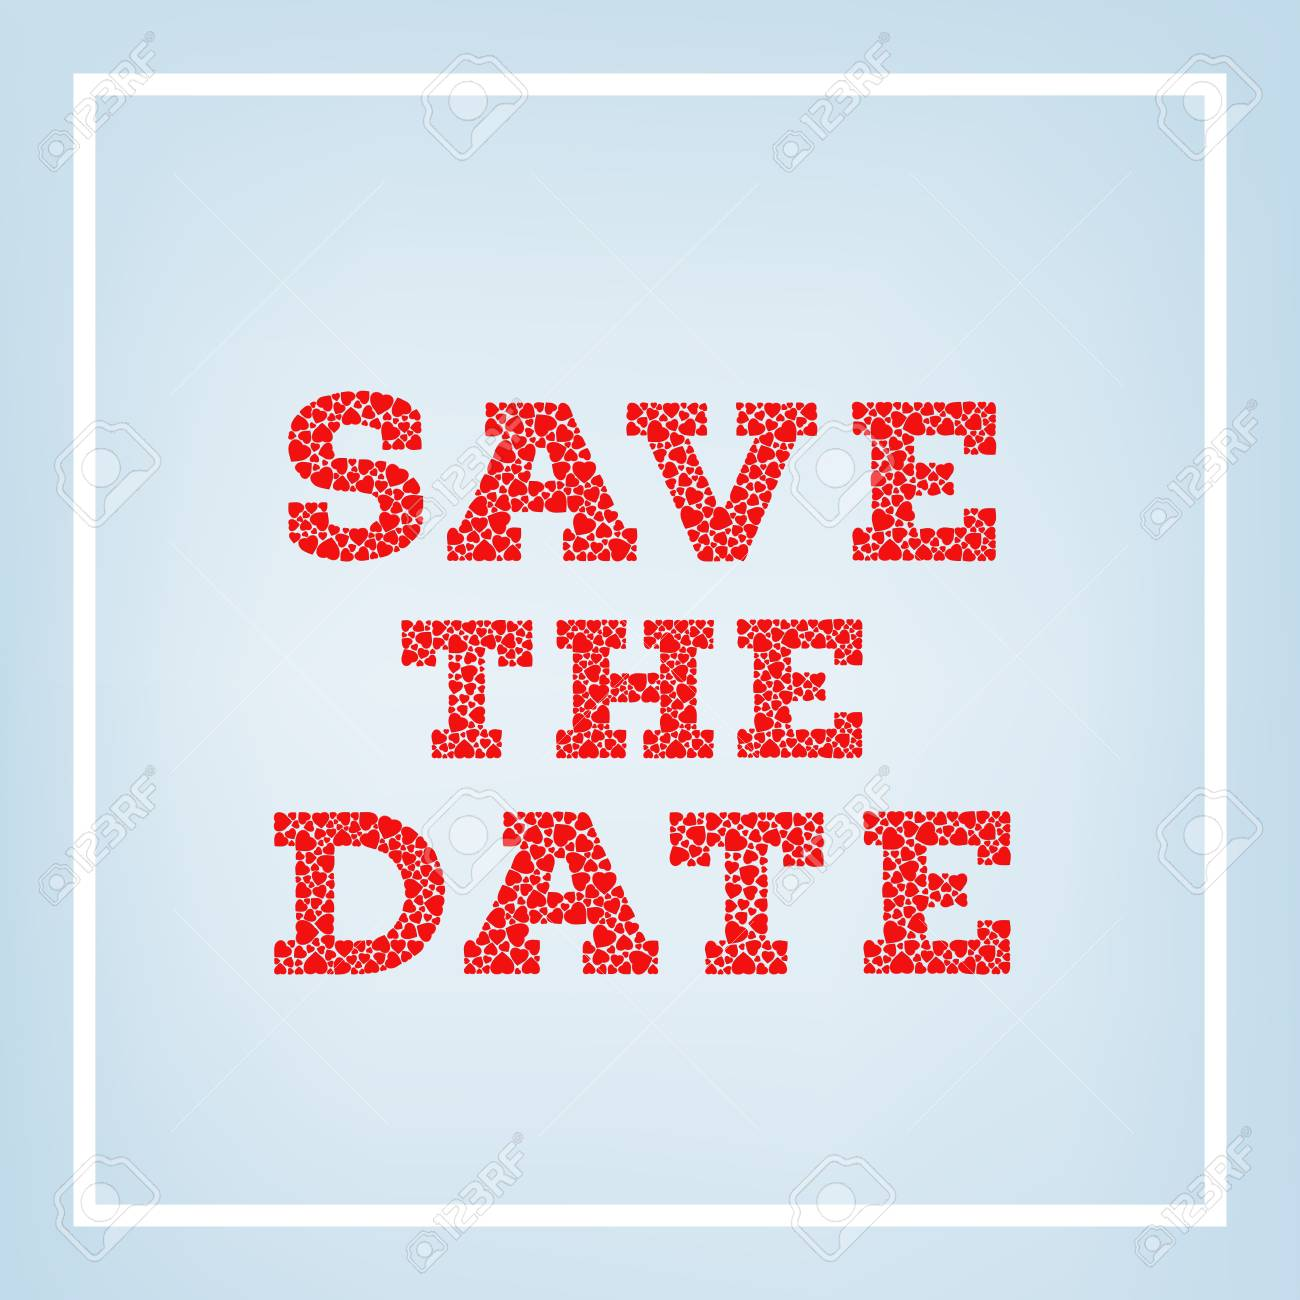 Save The Date Inscription Made Of Small Heart Shapes On Blue ...